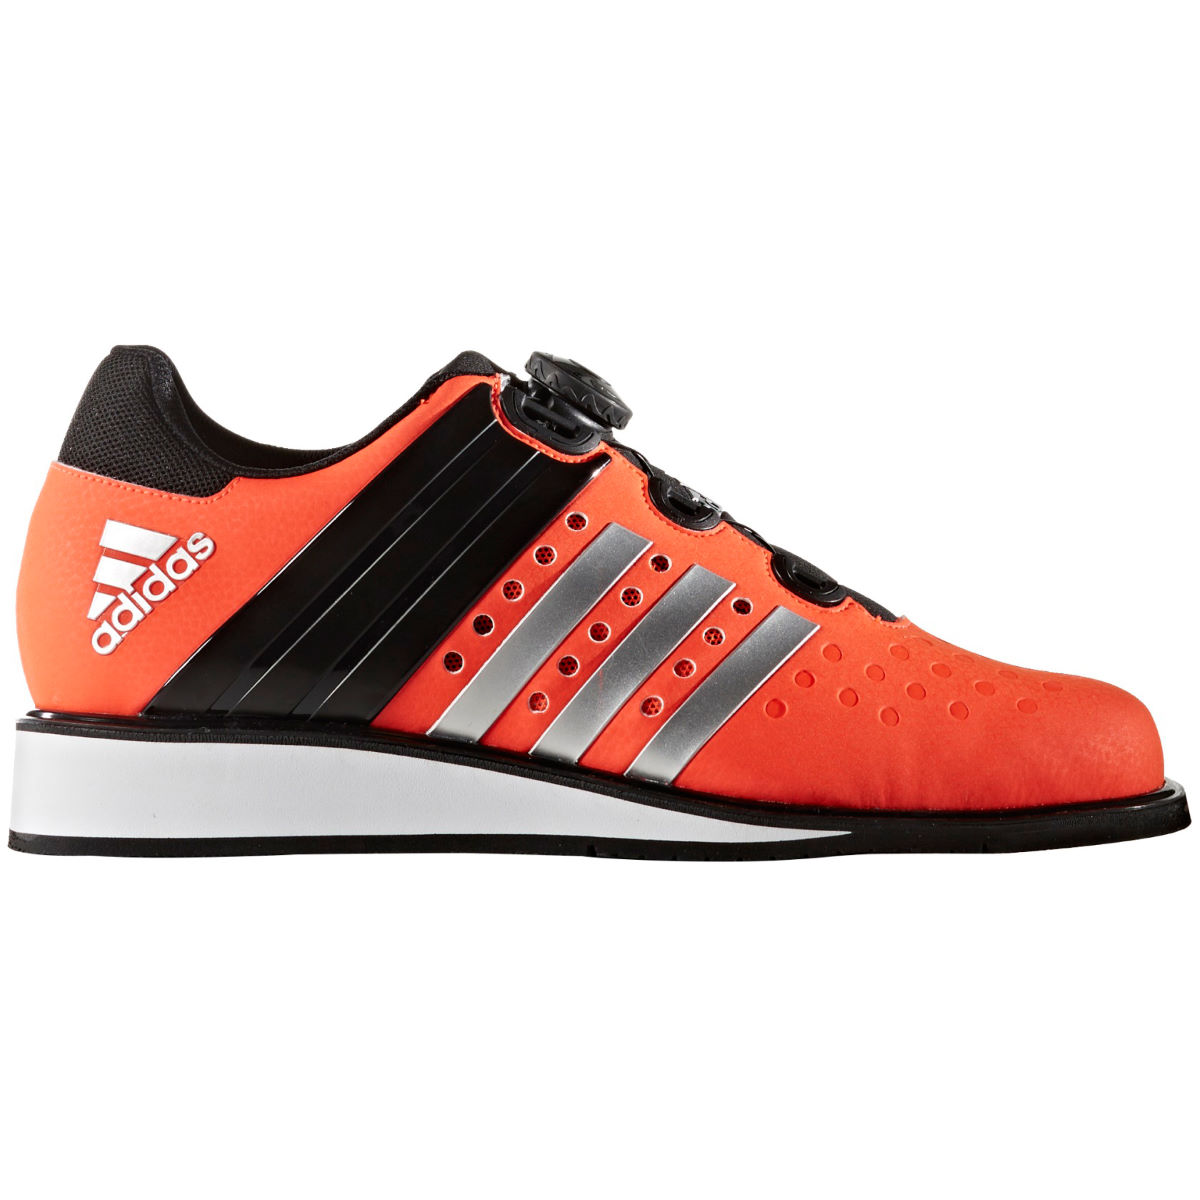 Image of Adidas Drehkraft Shoes (AW16) Training Running Shoes